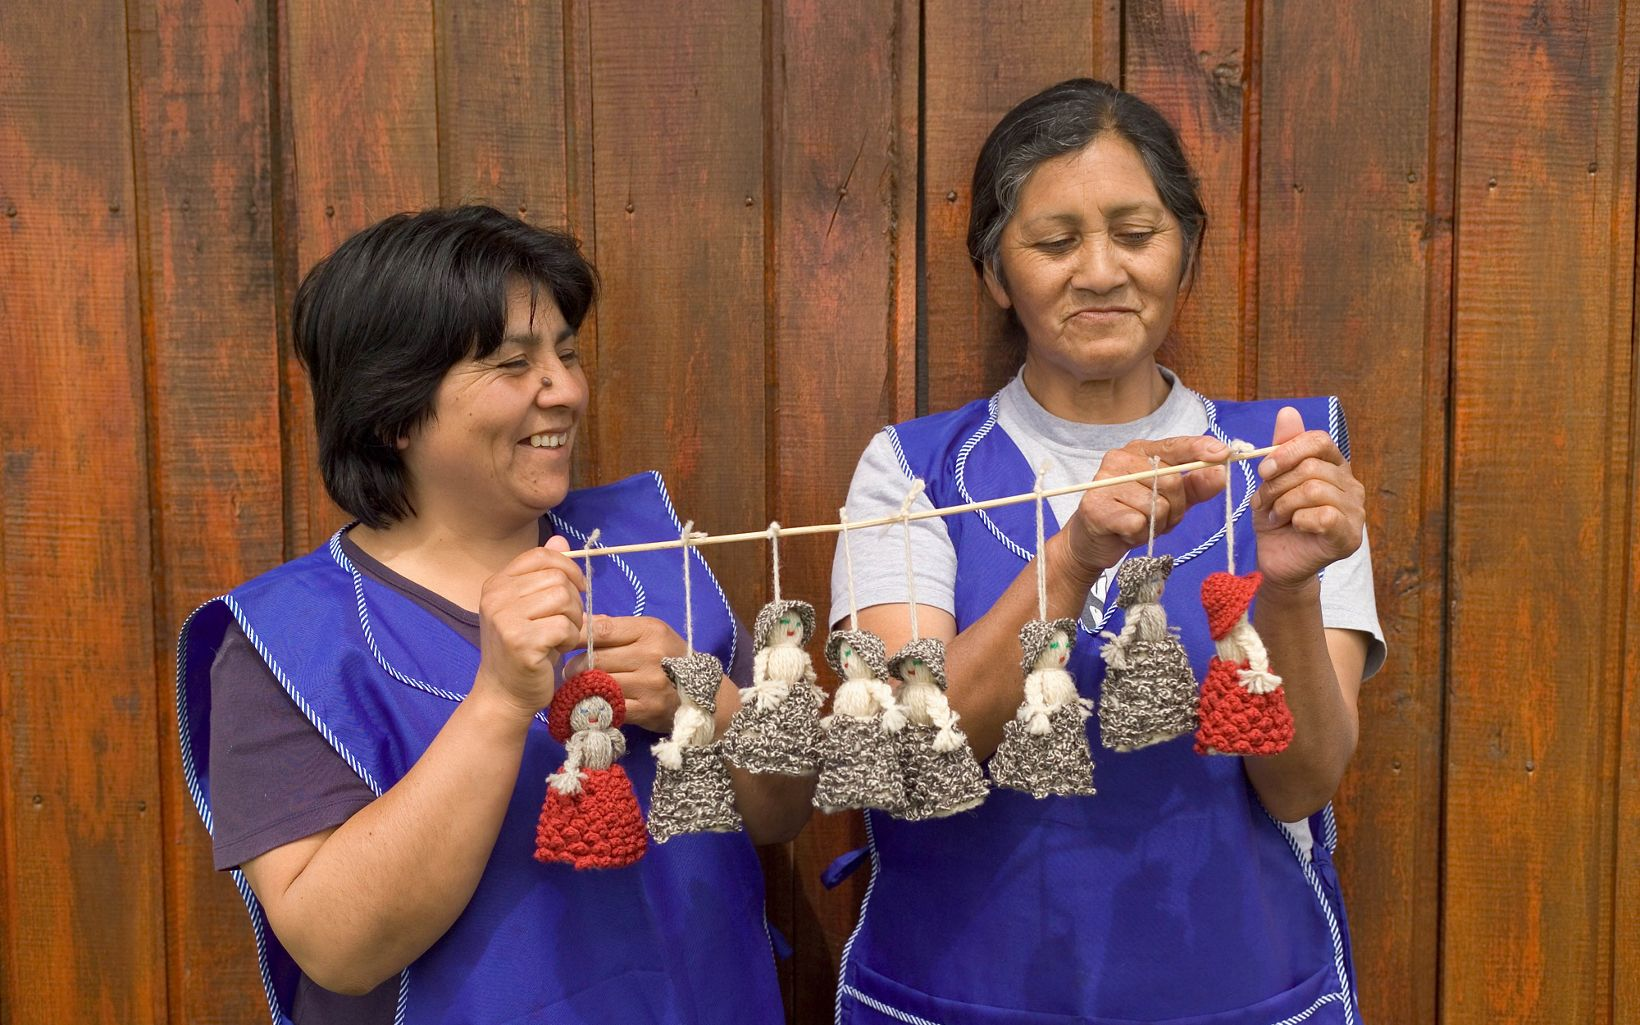 Fresia, (left), Inerta, (on right), display their knitted  dolls. They are members of the Kutralhue de Huiro women's cooperative at the Huiro indigenous community bordering the Reserva Costera Valdiviana.  The Nature Conservancy's Reserva Costera Valdiviana, (Valdivian Coastal Reserve), is a 147,500 acre site comprising temperate rainforest and 36km of Pacific coastline south of Valdivia, Chile.